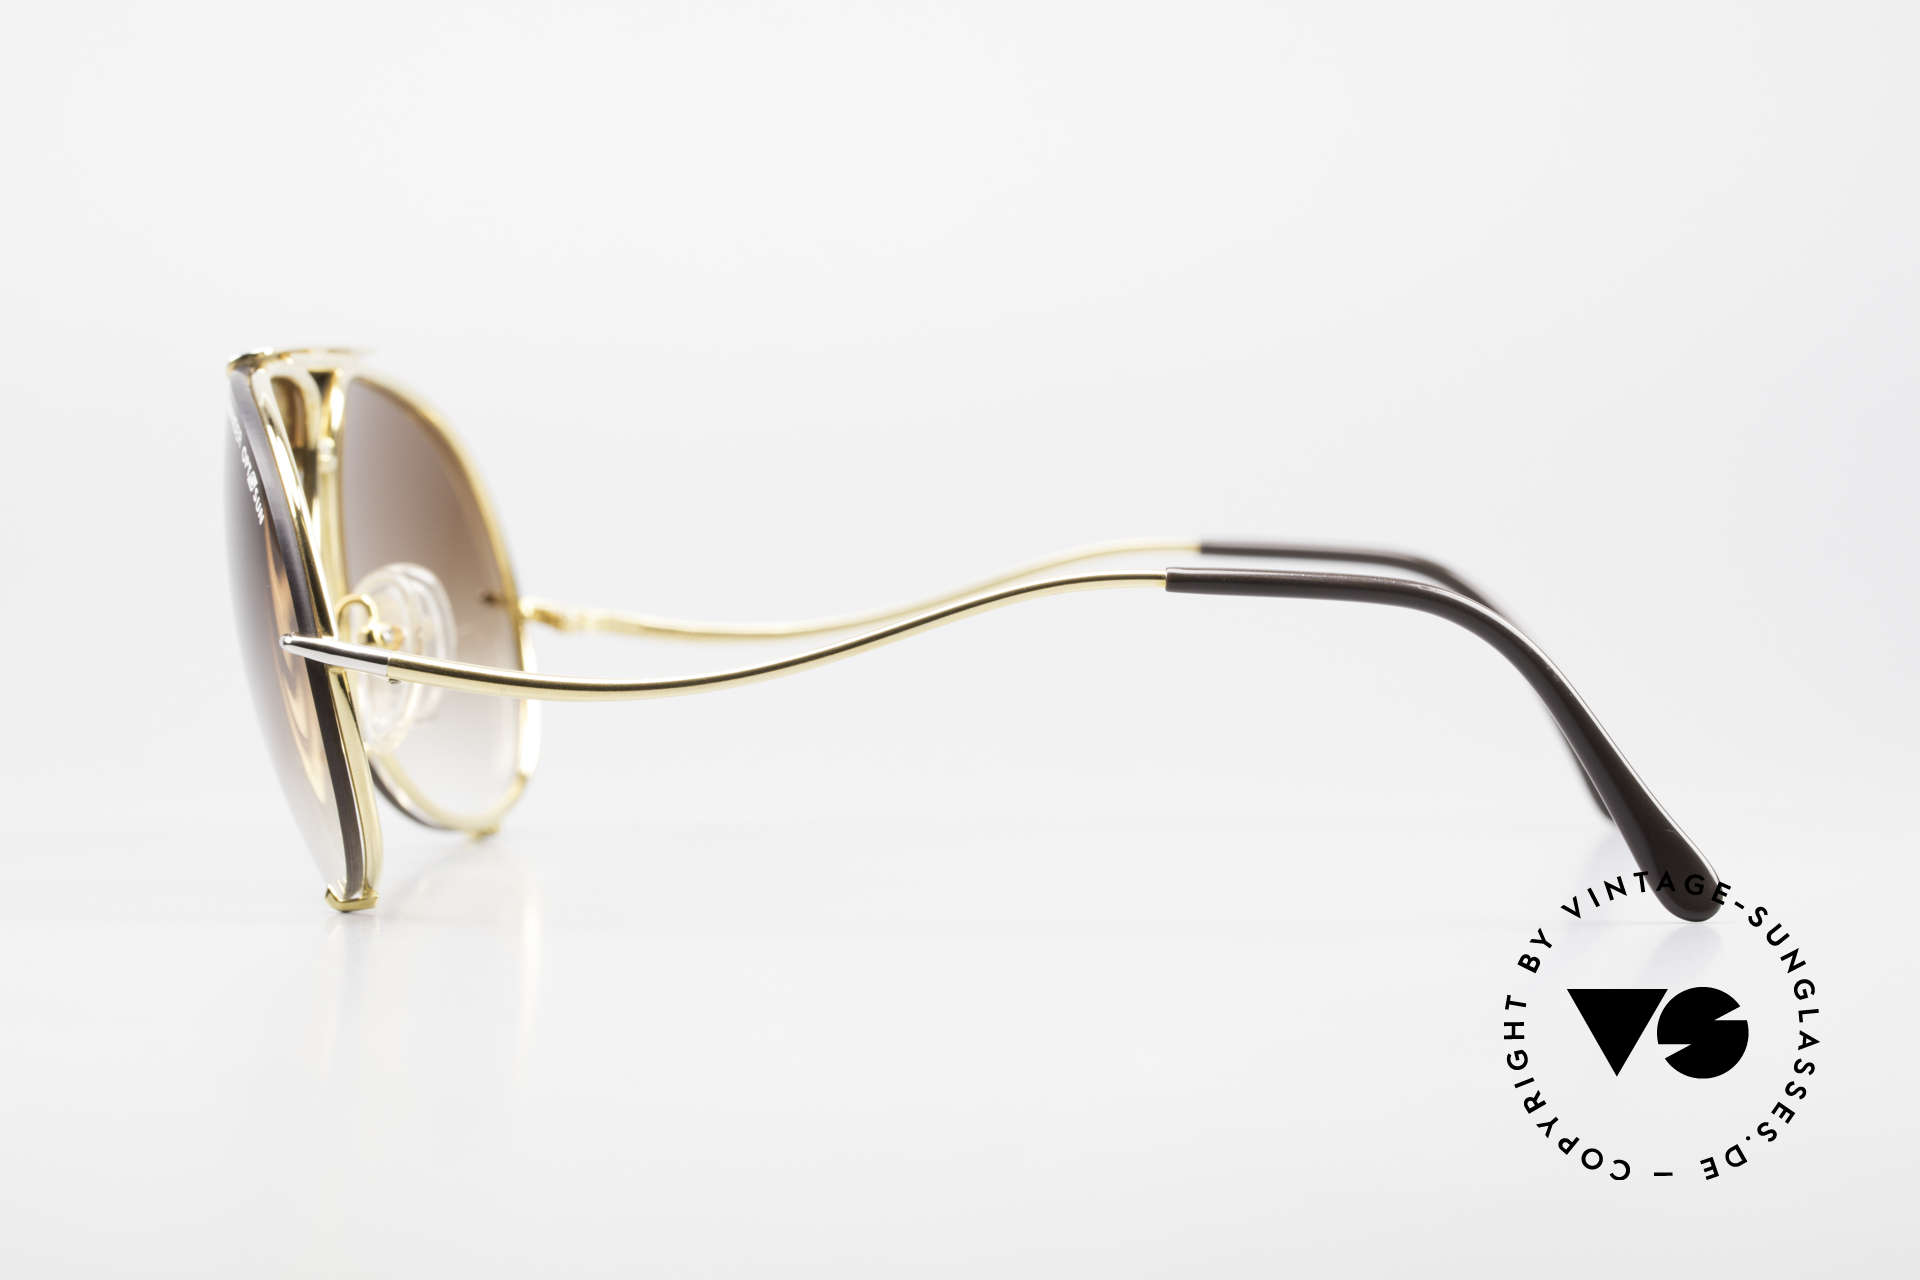 Colani 10-401 Optos Design Wing Commander, unworn (like all our vintage eyewear by COLANI), Made for Men